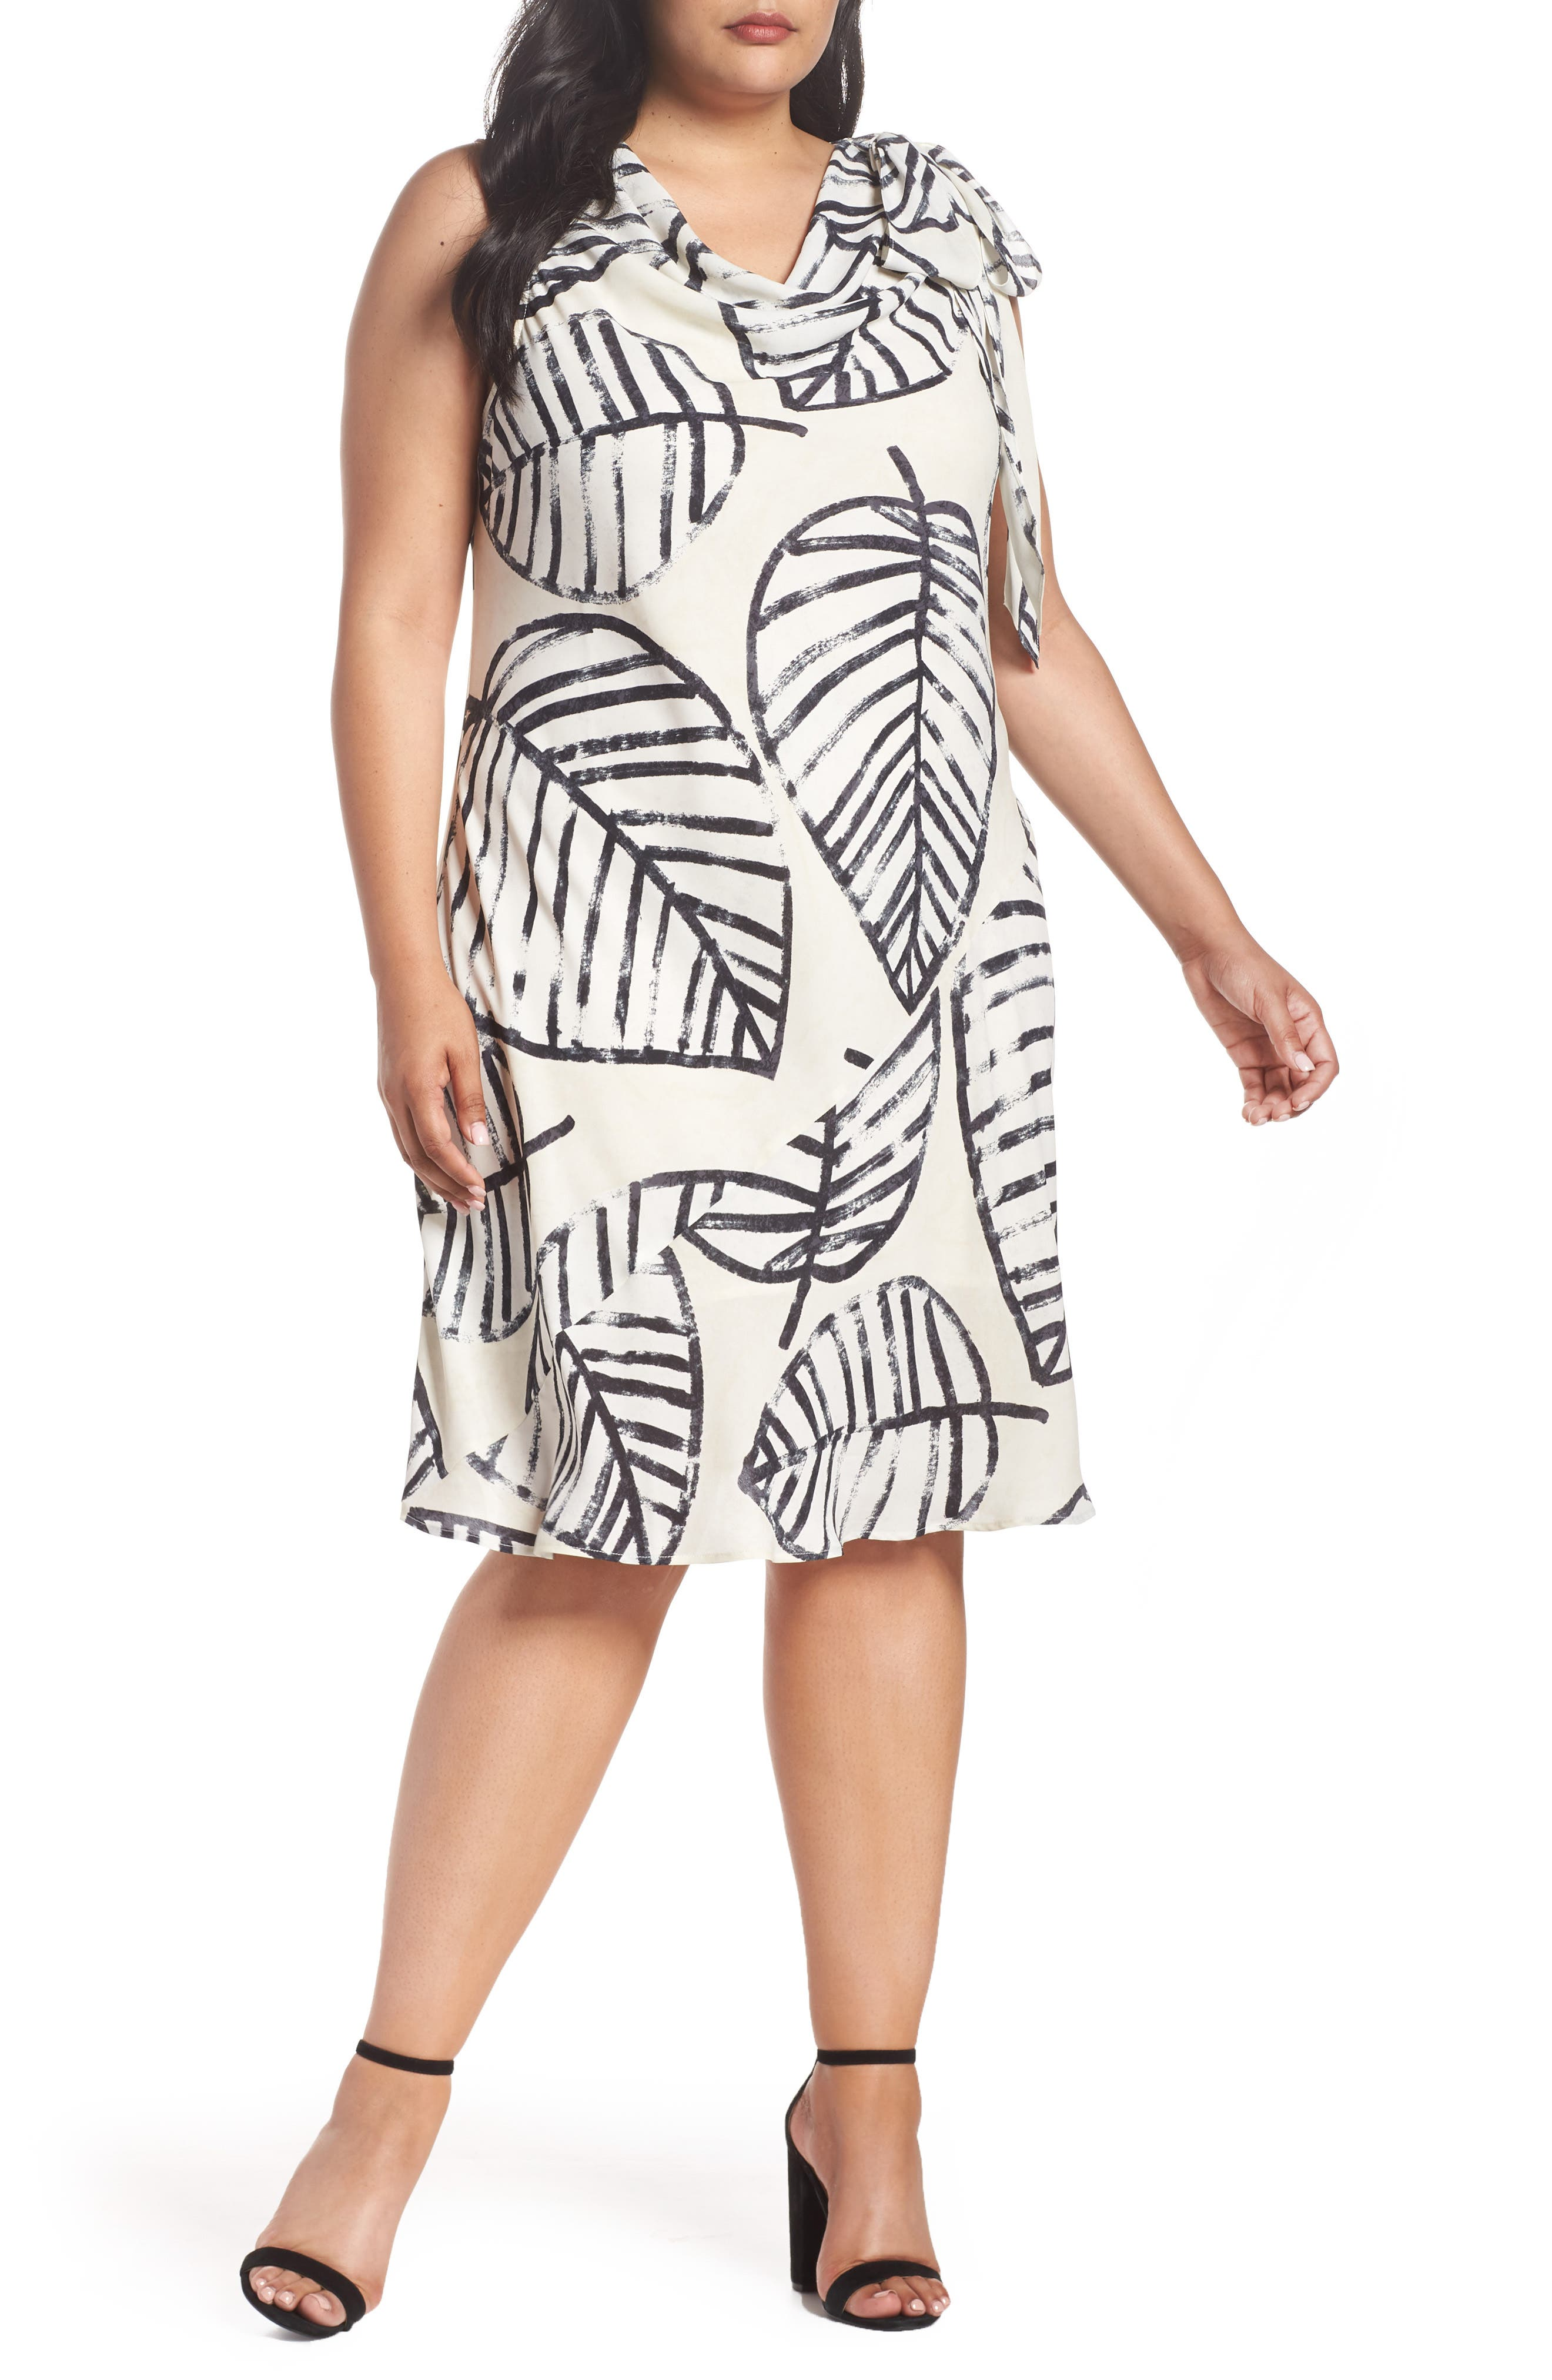 Etched Leaves Tie Dress,                             Main thumbnail 1, color,                             257